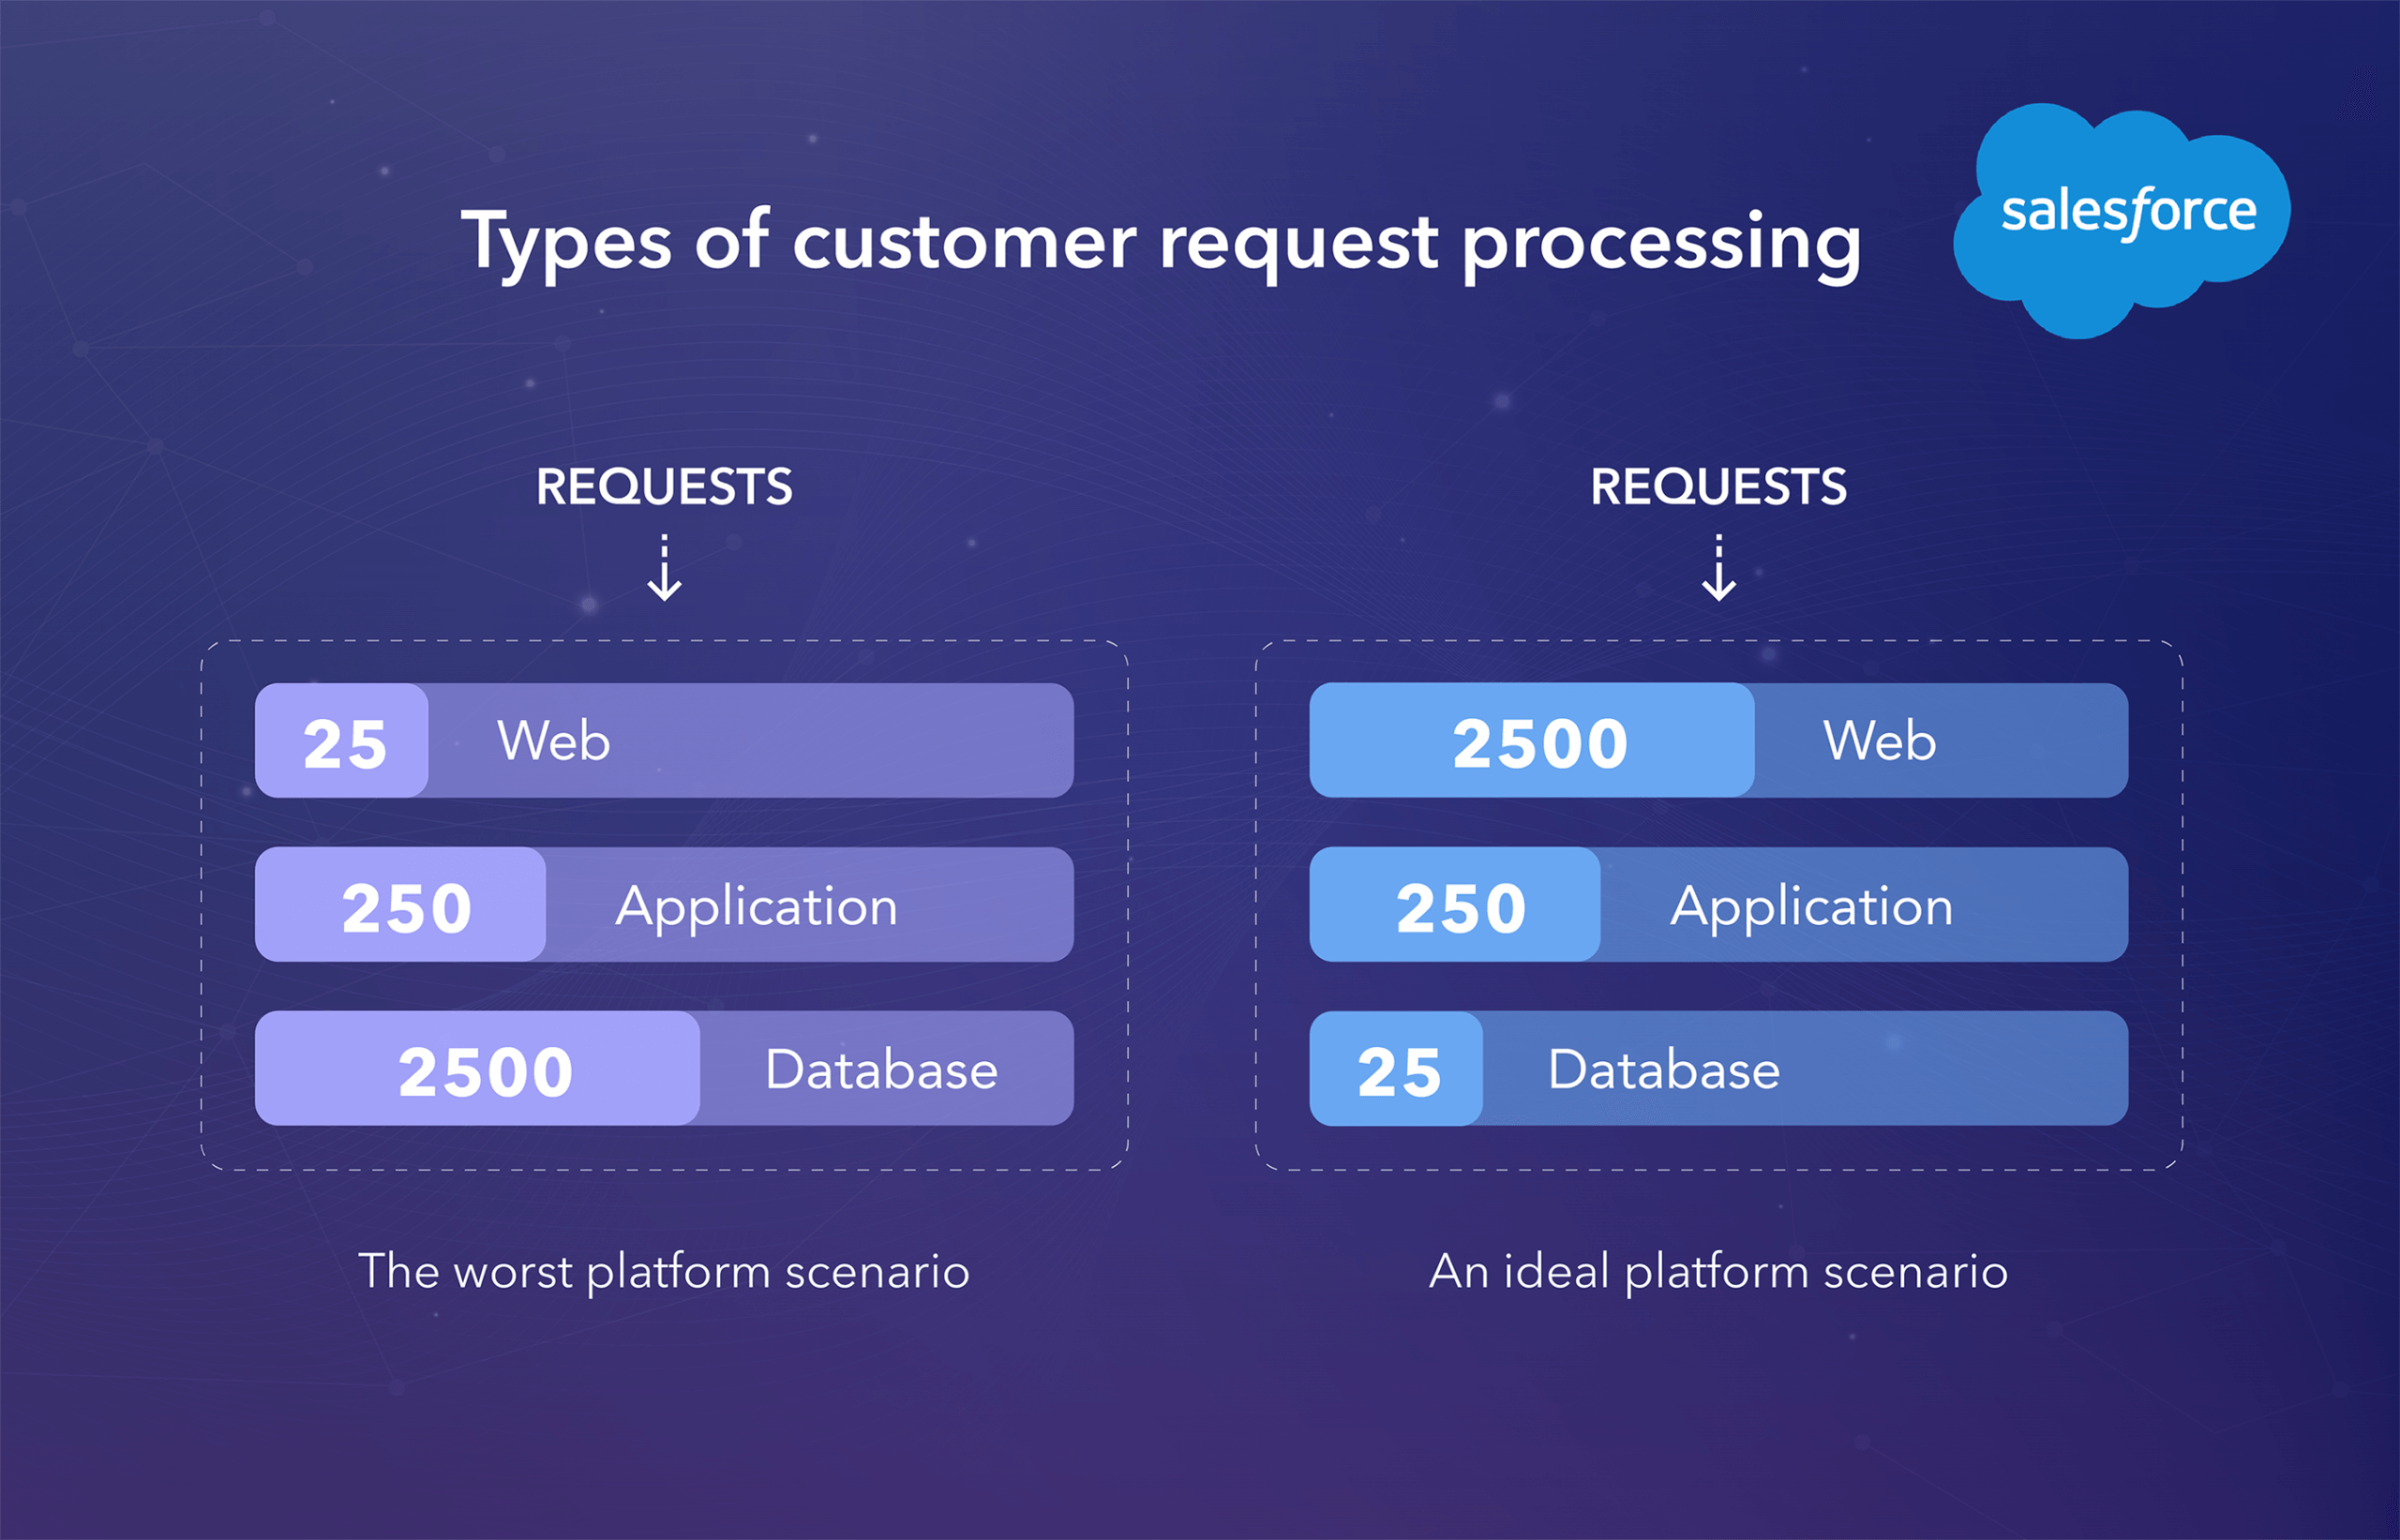 Types of customer request processing